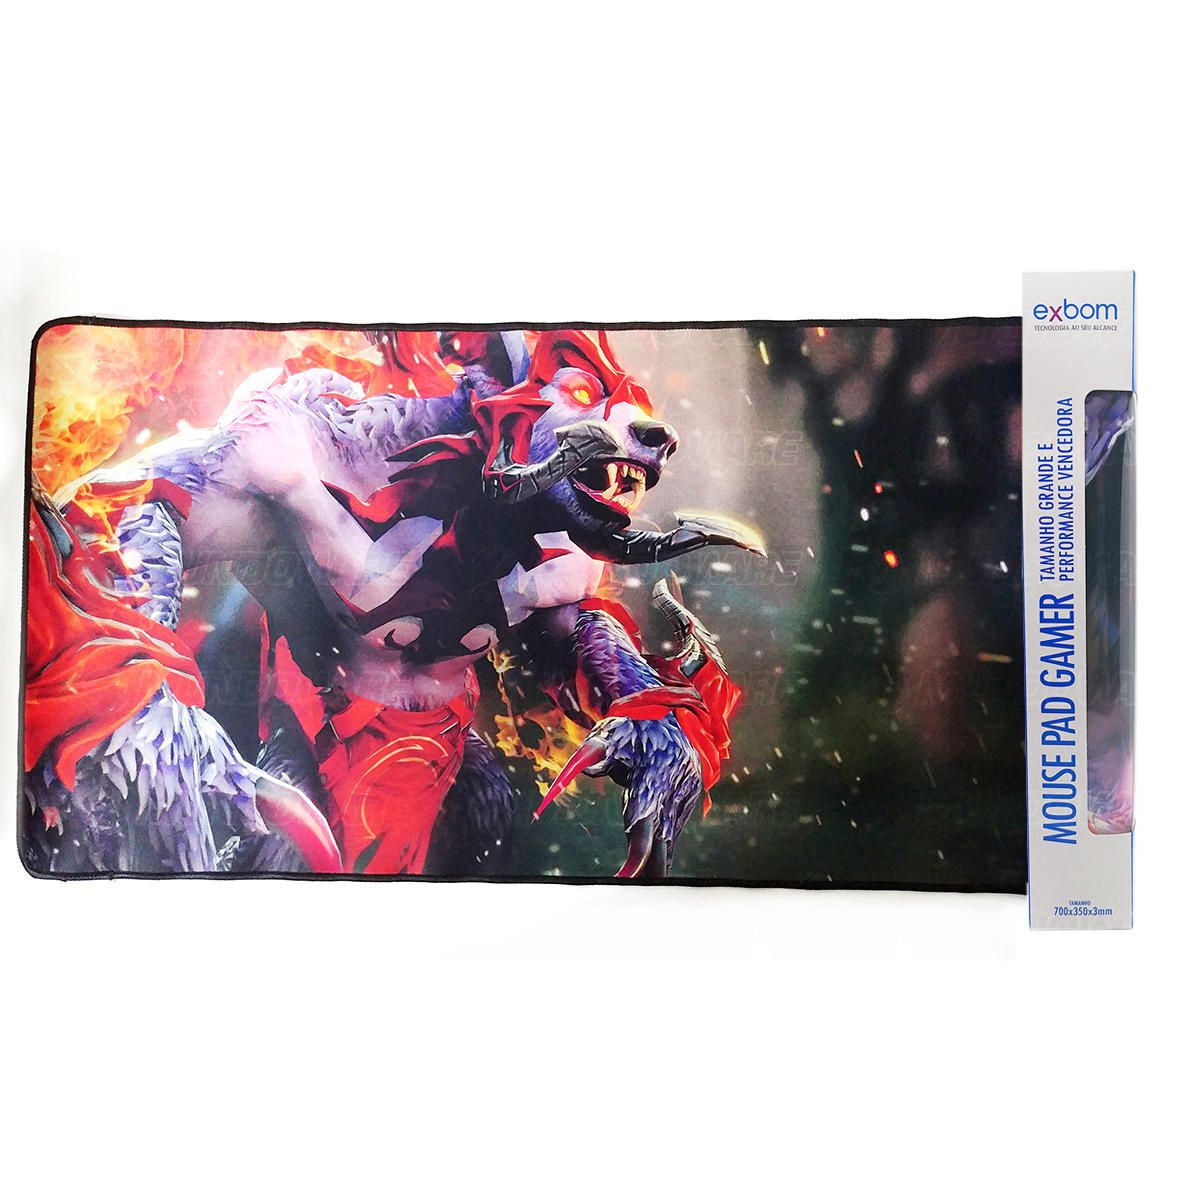 Mouse Pad Gamer Extra Grande 700x350x3mm com Bordas Costuradas e Base Antiderrapante Modelo Rei Urso Exbom MP-7035C